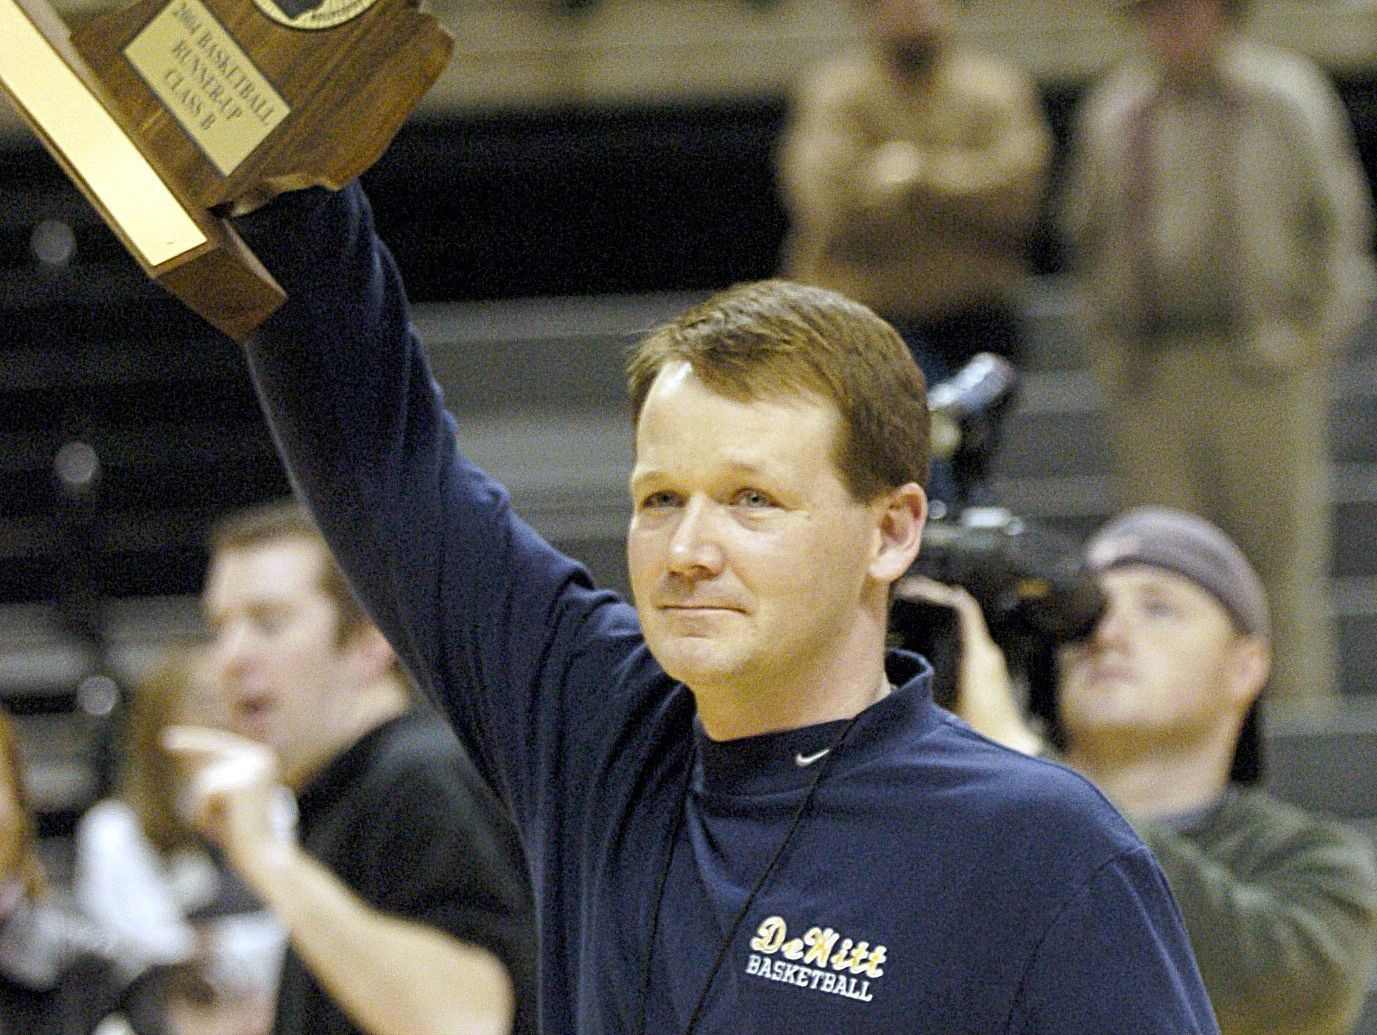 Ron Marlan guided the Panthers to a runner-up finish in Class B during his debut season leading the varsity boys team in 2004.